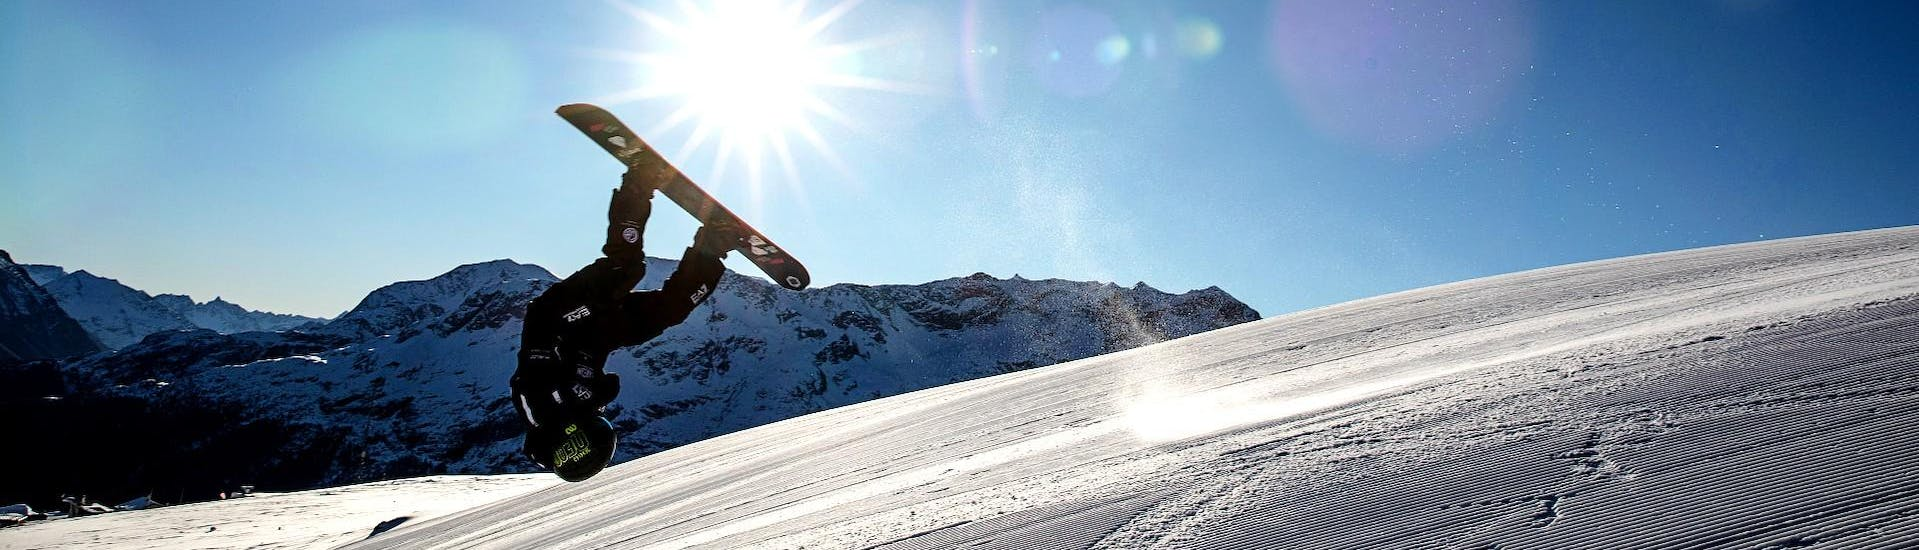 private-snowboarding-lessons-for-kidsadults-of-all-levels-giorgio-rocca-ski-academy-stmoritz-hero